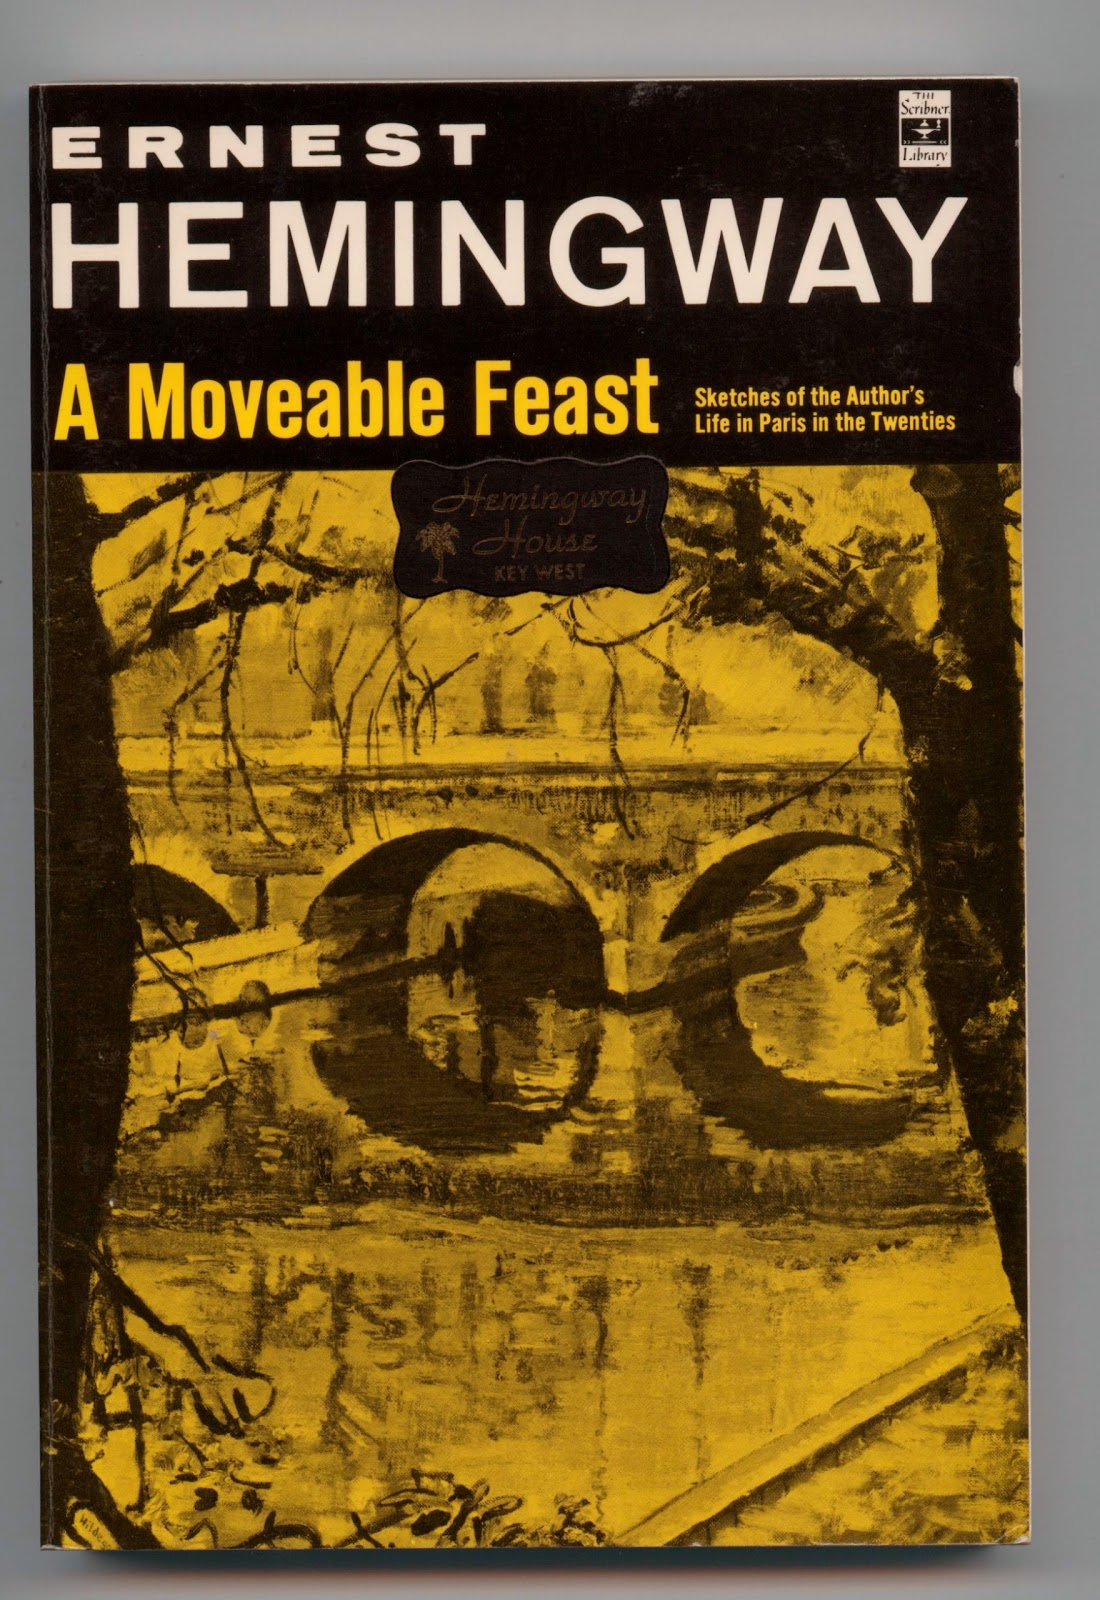 essay on soldiers home by ernest hemingway